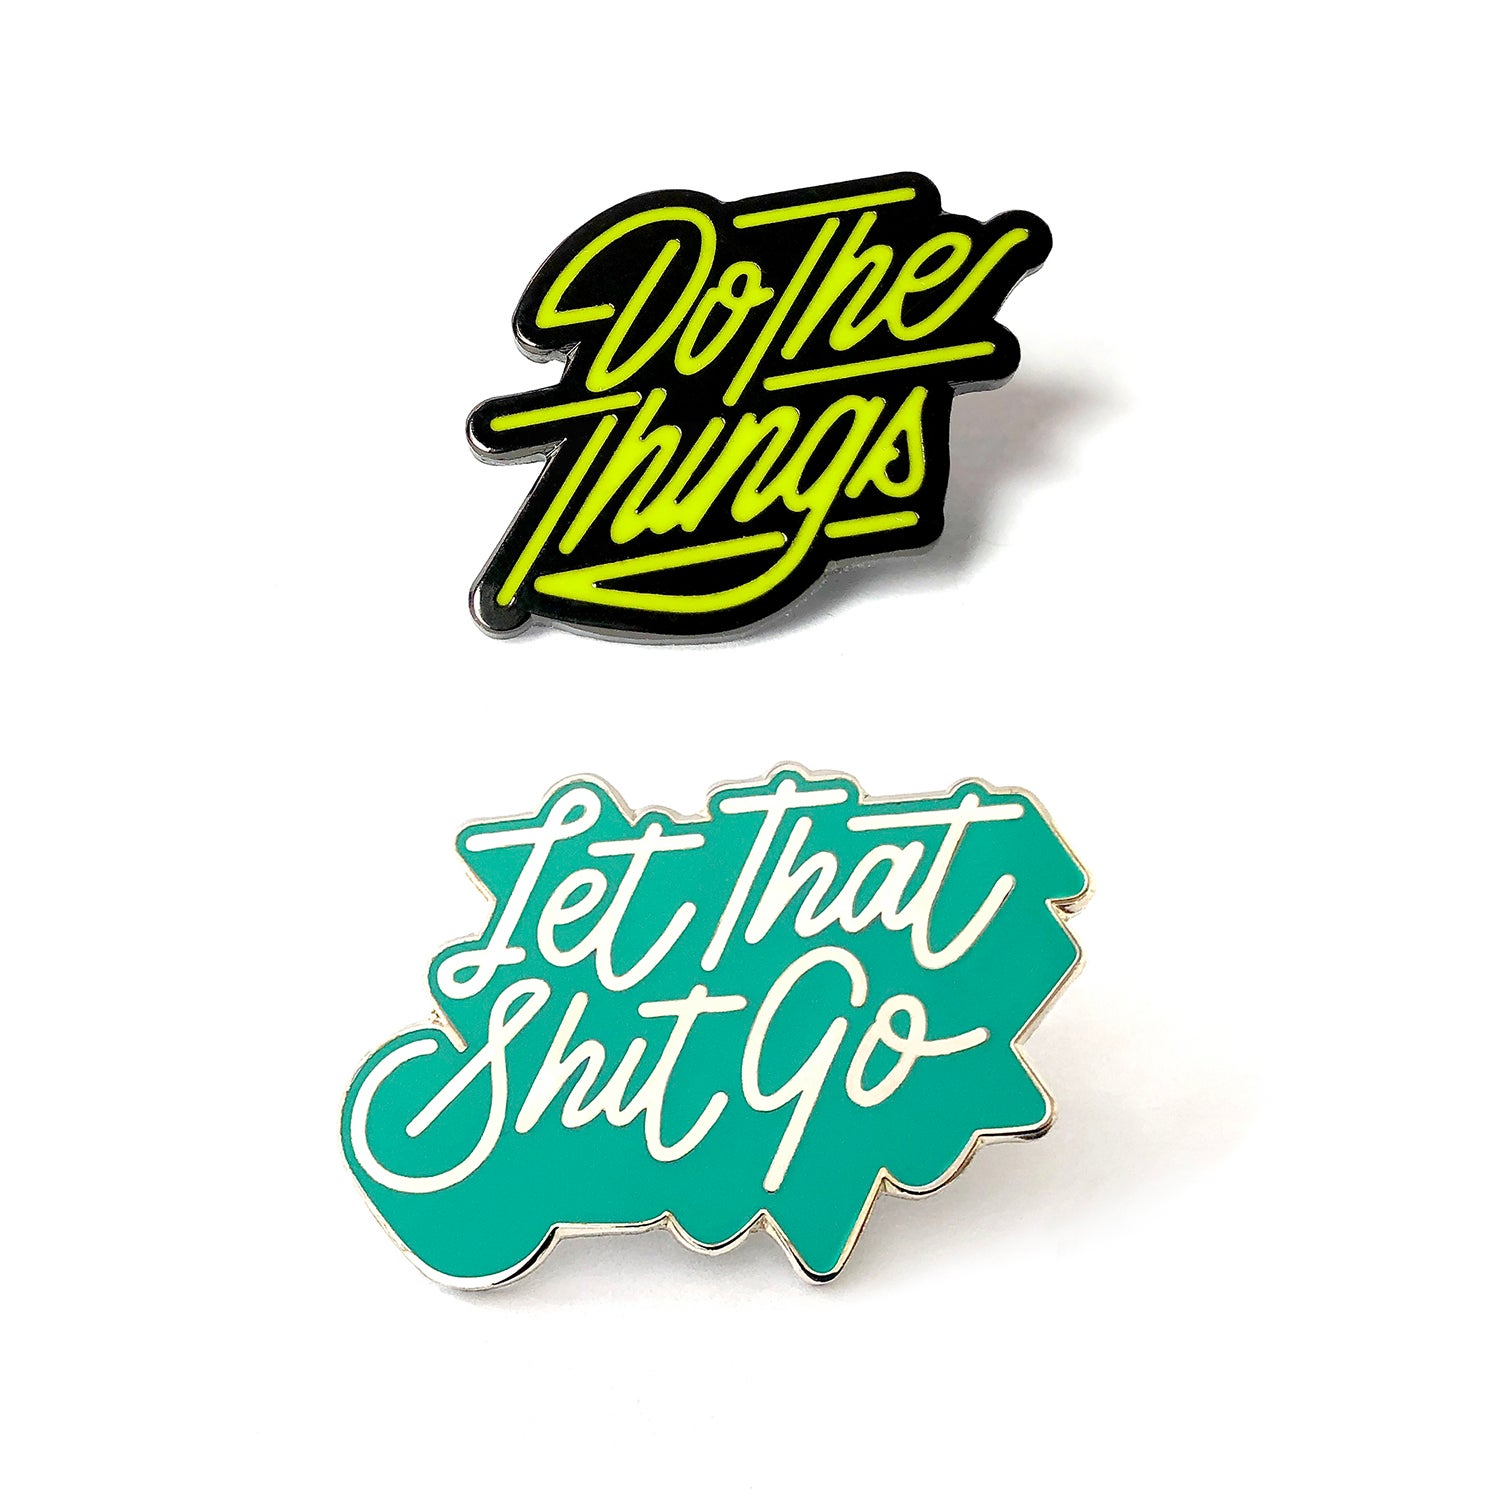 Image of Do The Things & Let That Shit Go Pin Combo